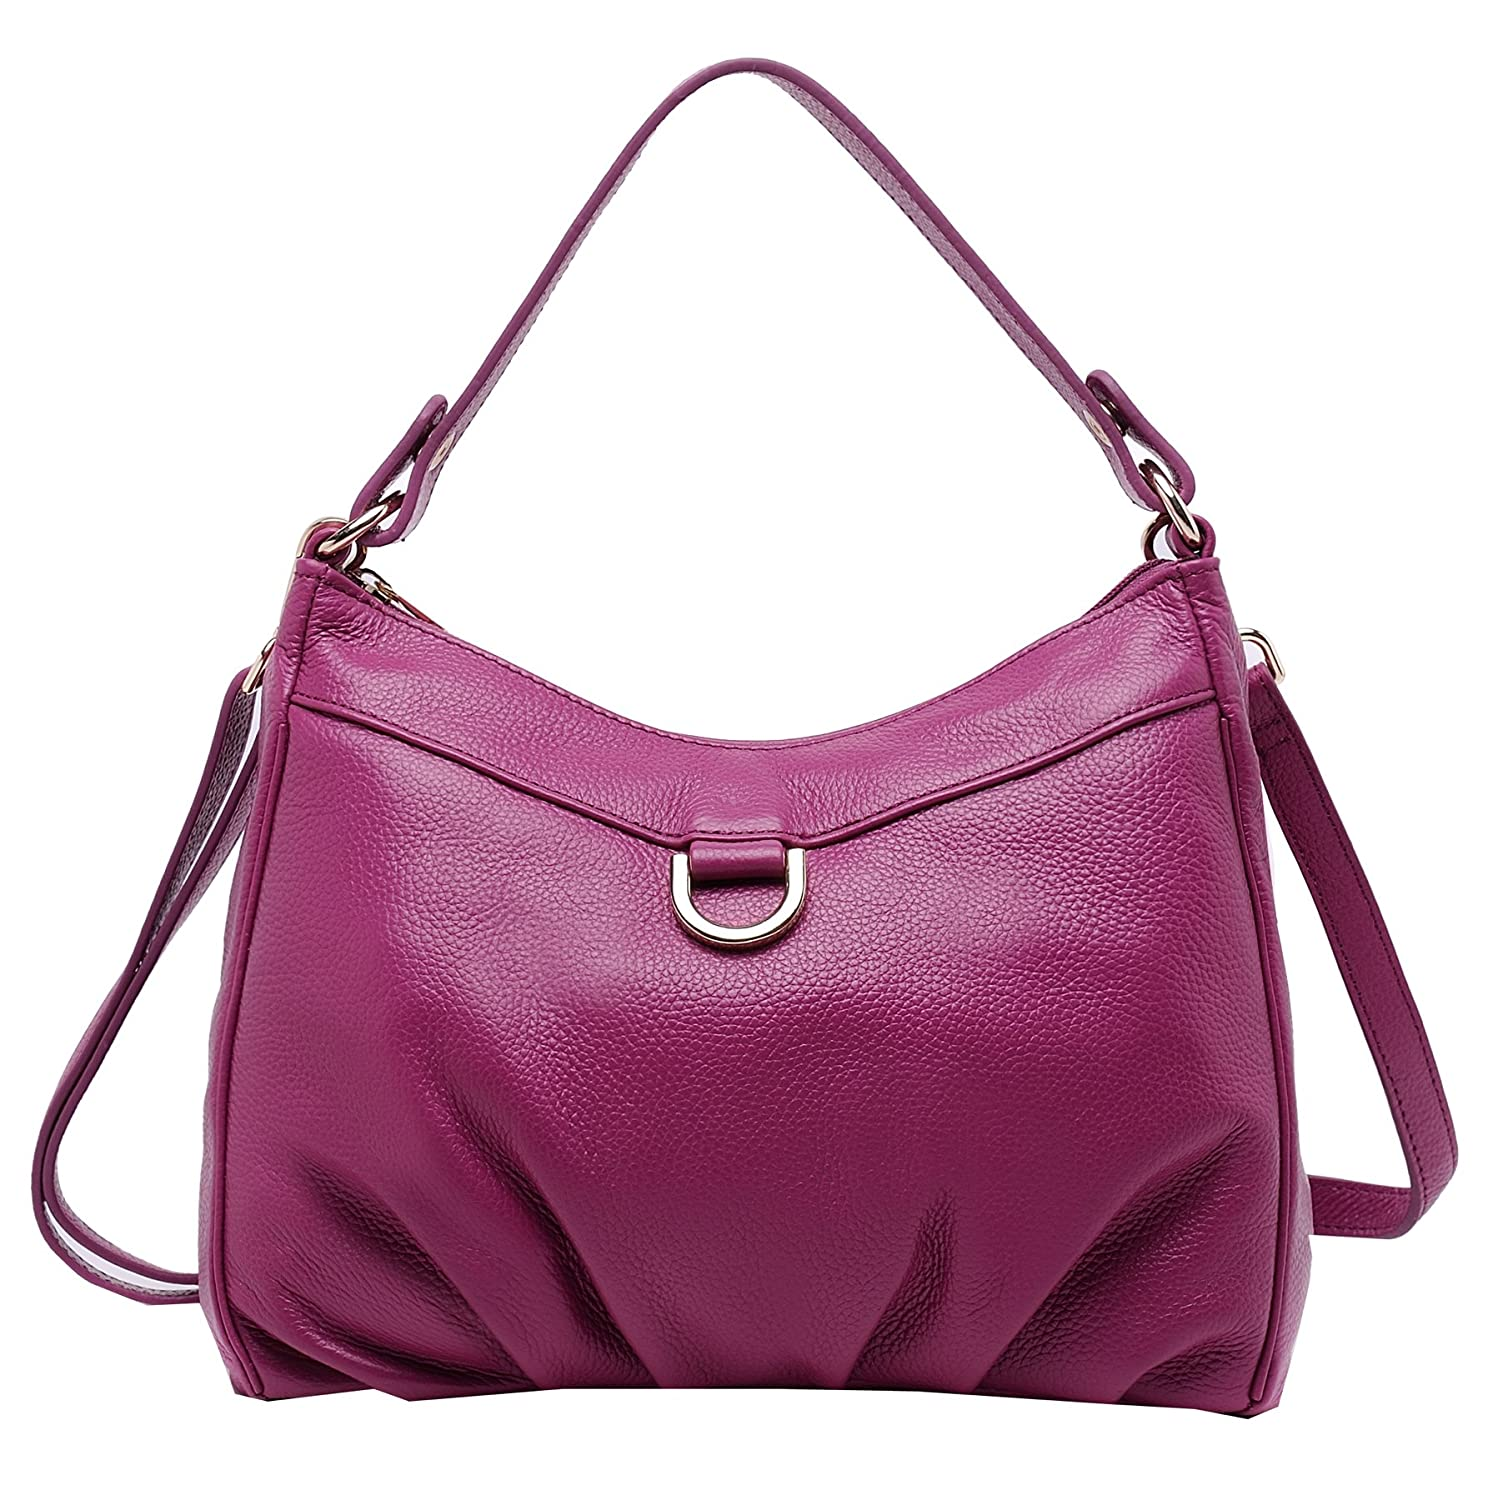 Amazon.com  Heshe Women Leather Handbags Top Handle Bags Shoulder Bag  Satchel and Purse with Long Strap (Violet)  Shoes 30a71f48e9005